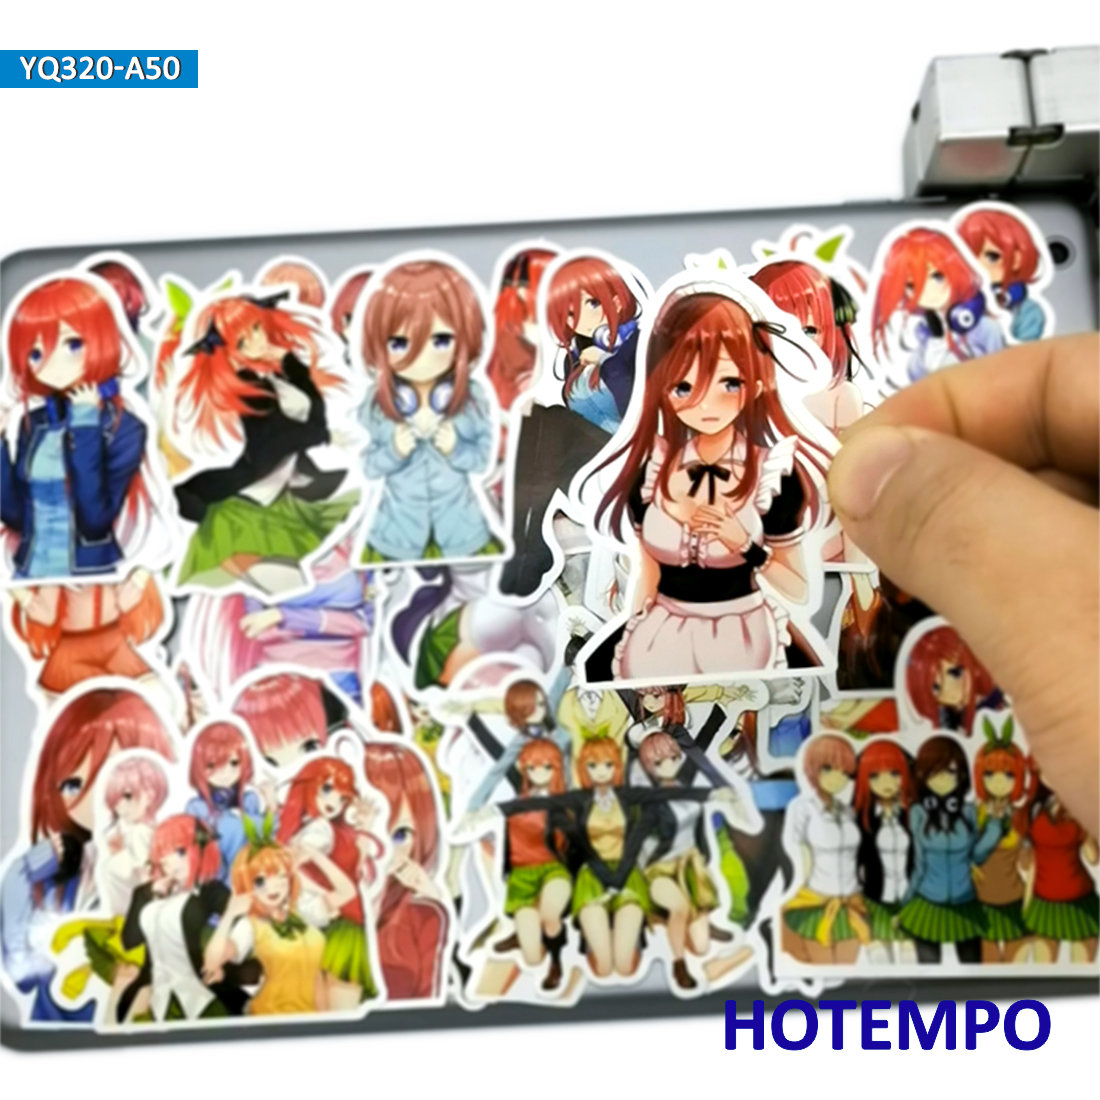 50pcs Cute Anime The Quintessential Quintuplets Stickers For Mobile Phone Laptop Pad Case Luggage Kawaii Cartoon Decal Stickers